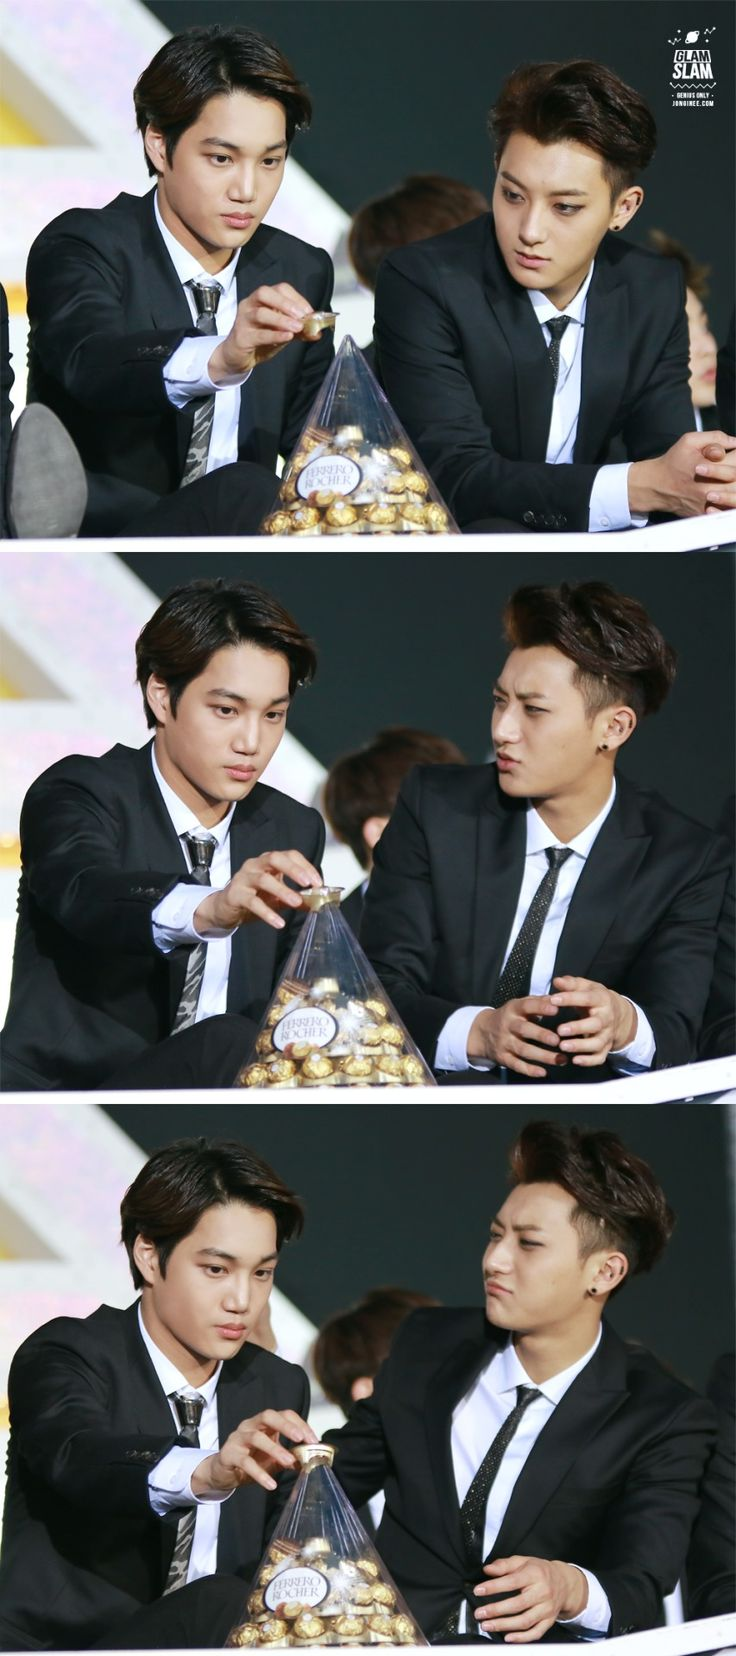 "Omg Tao's face lmaoooo he has that look like ""why you so stupid??"" and kai is just being adorable and oblivious"